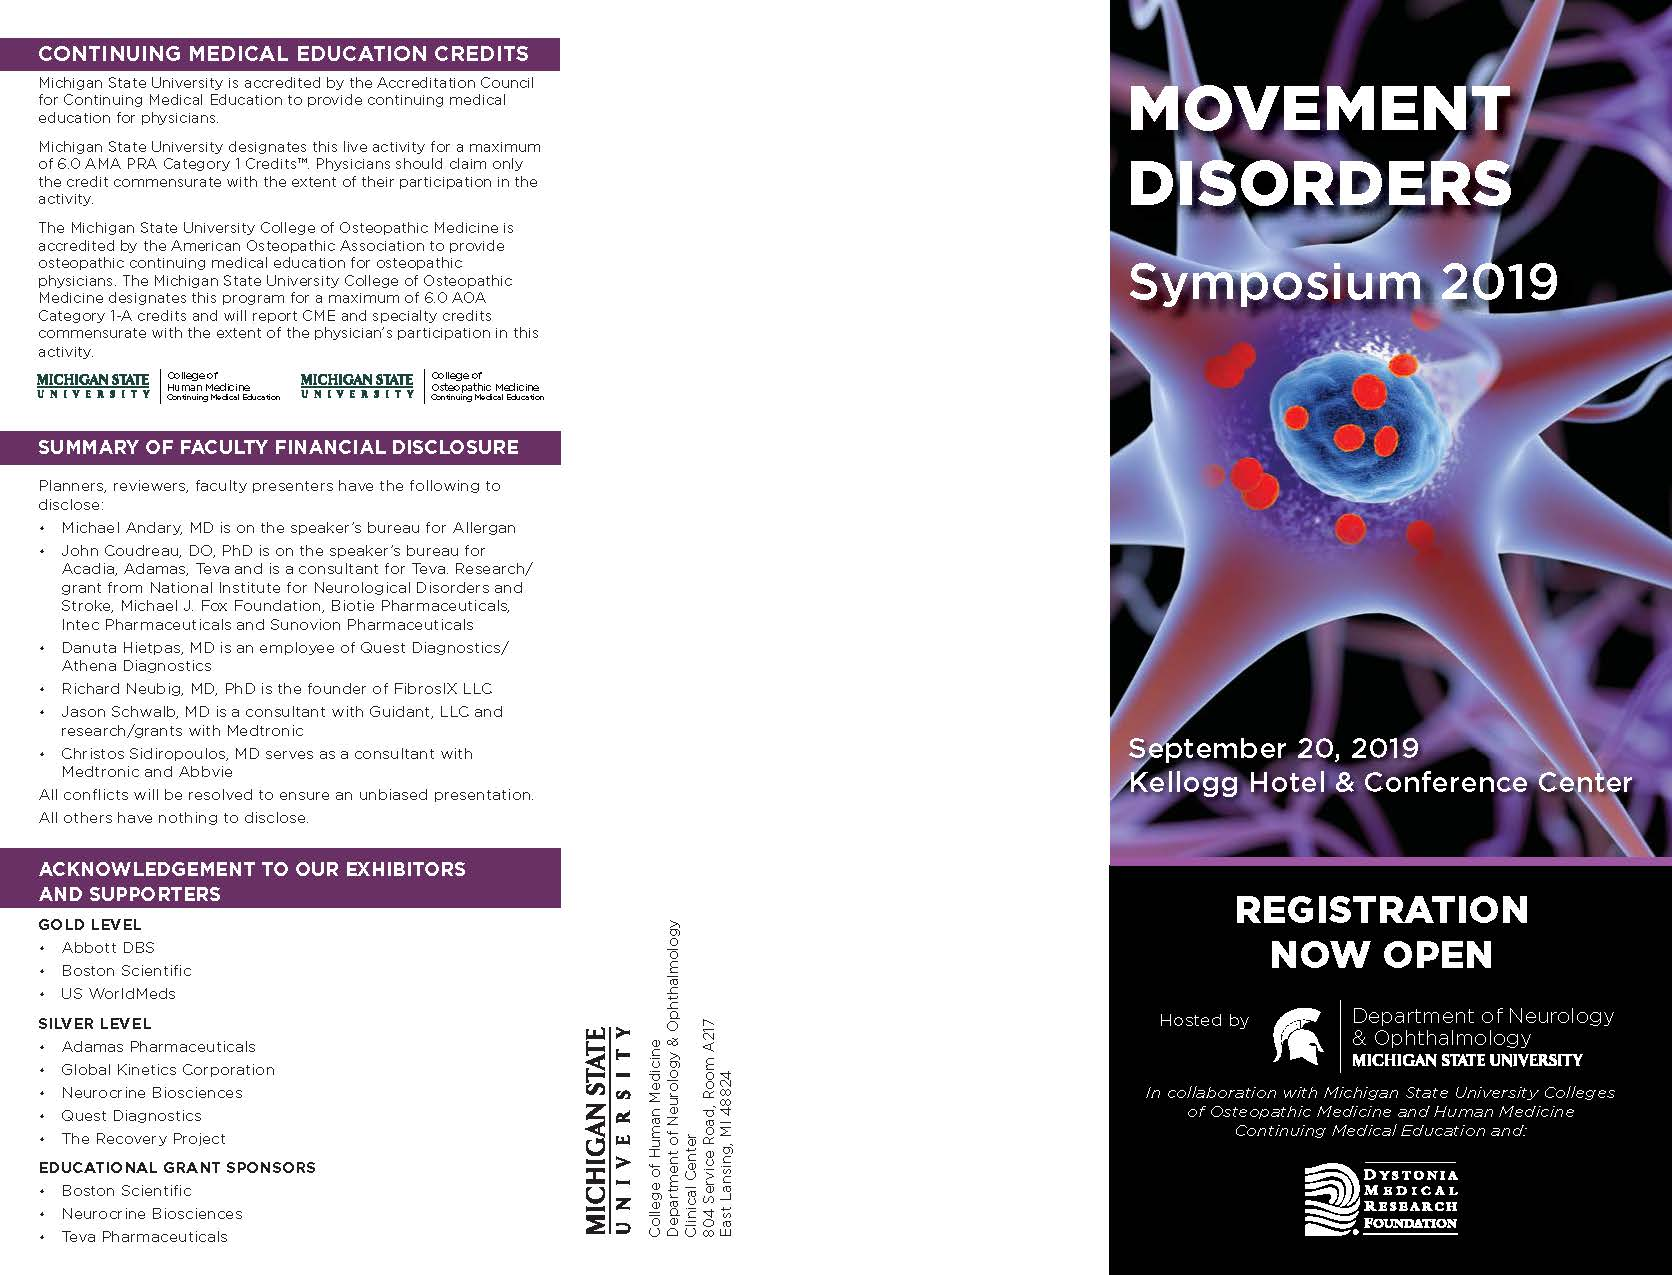 Movement Disorders MSU 2019 Page 1